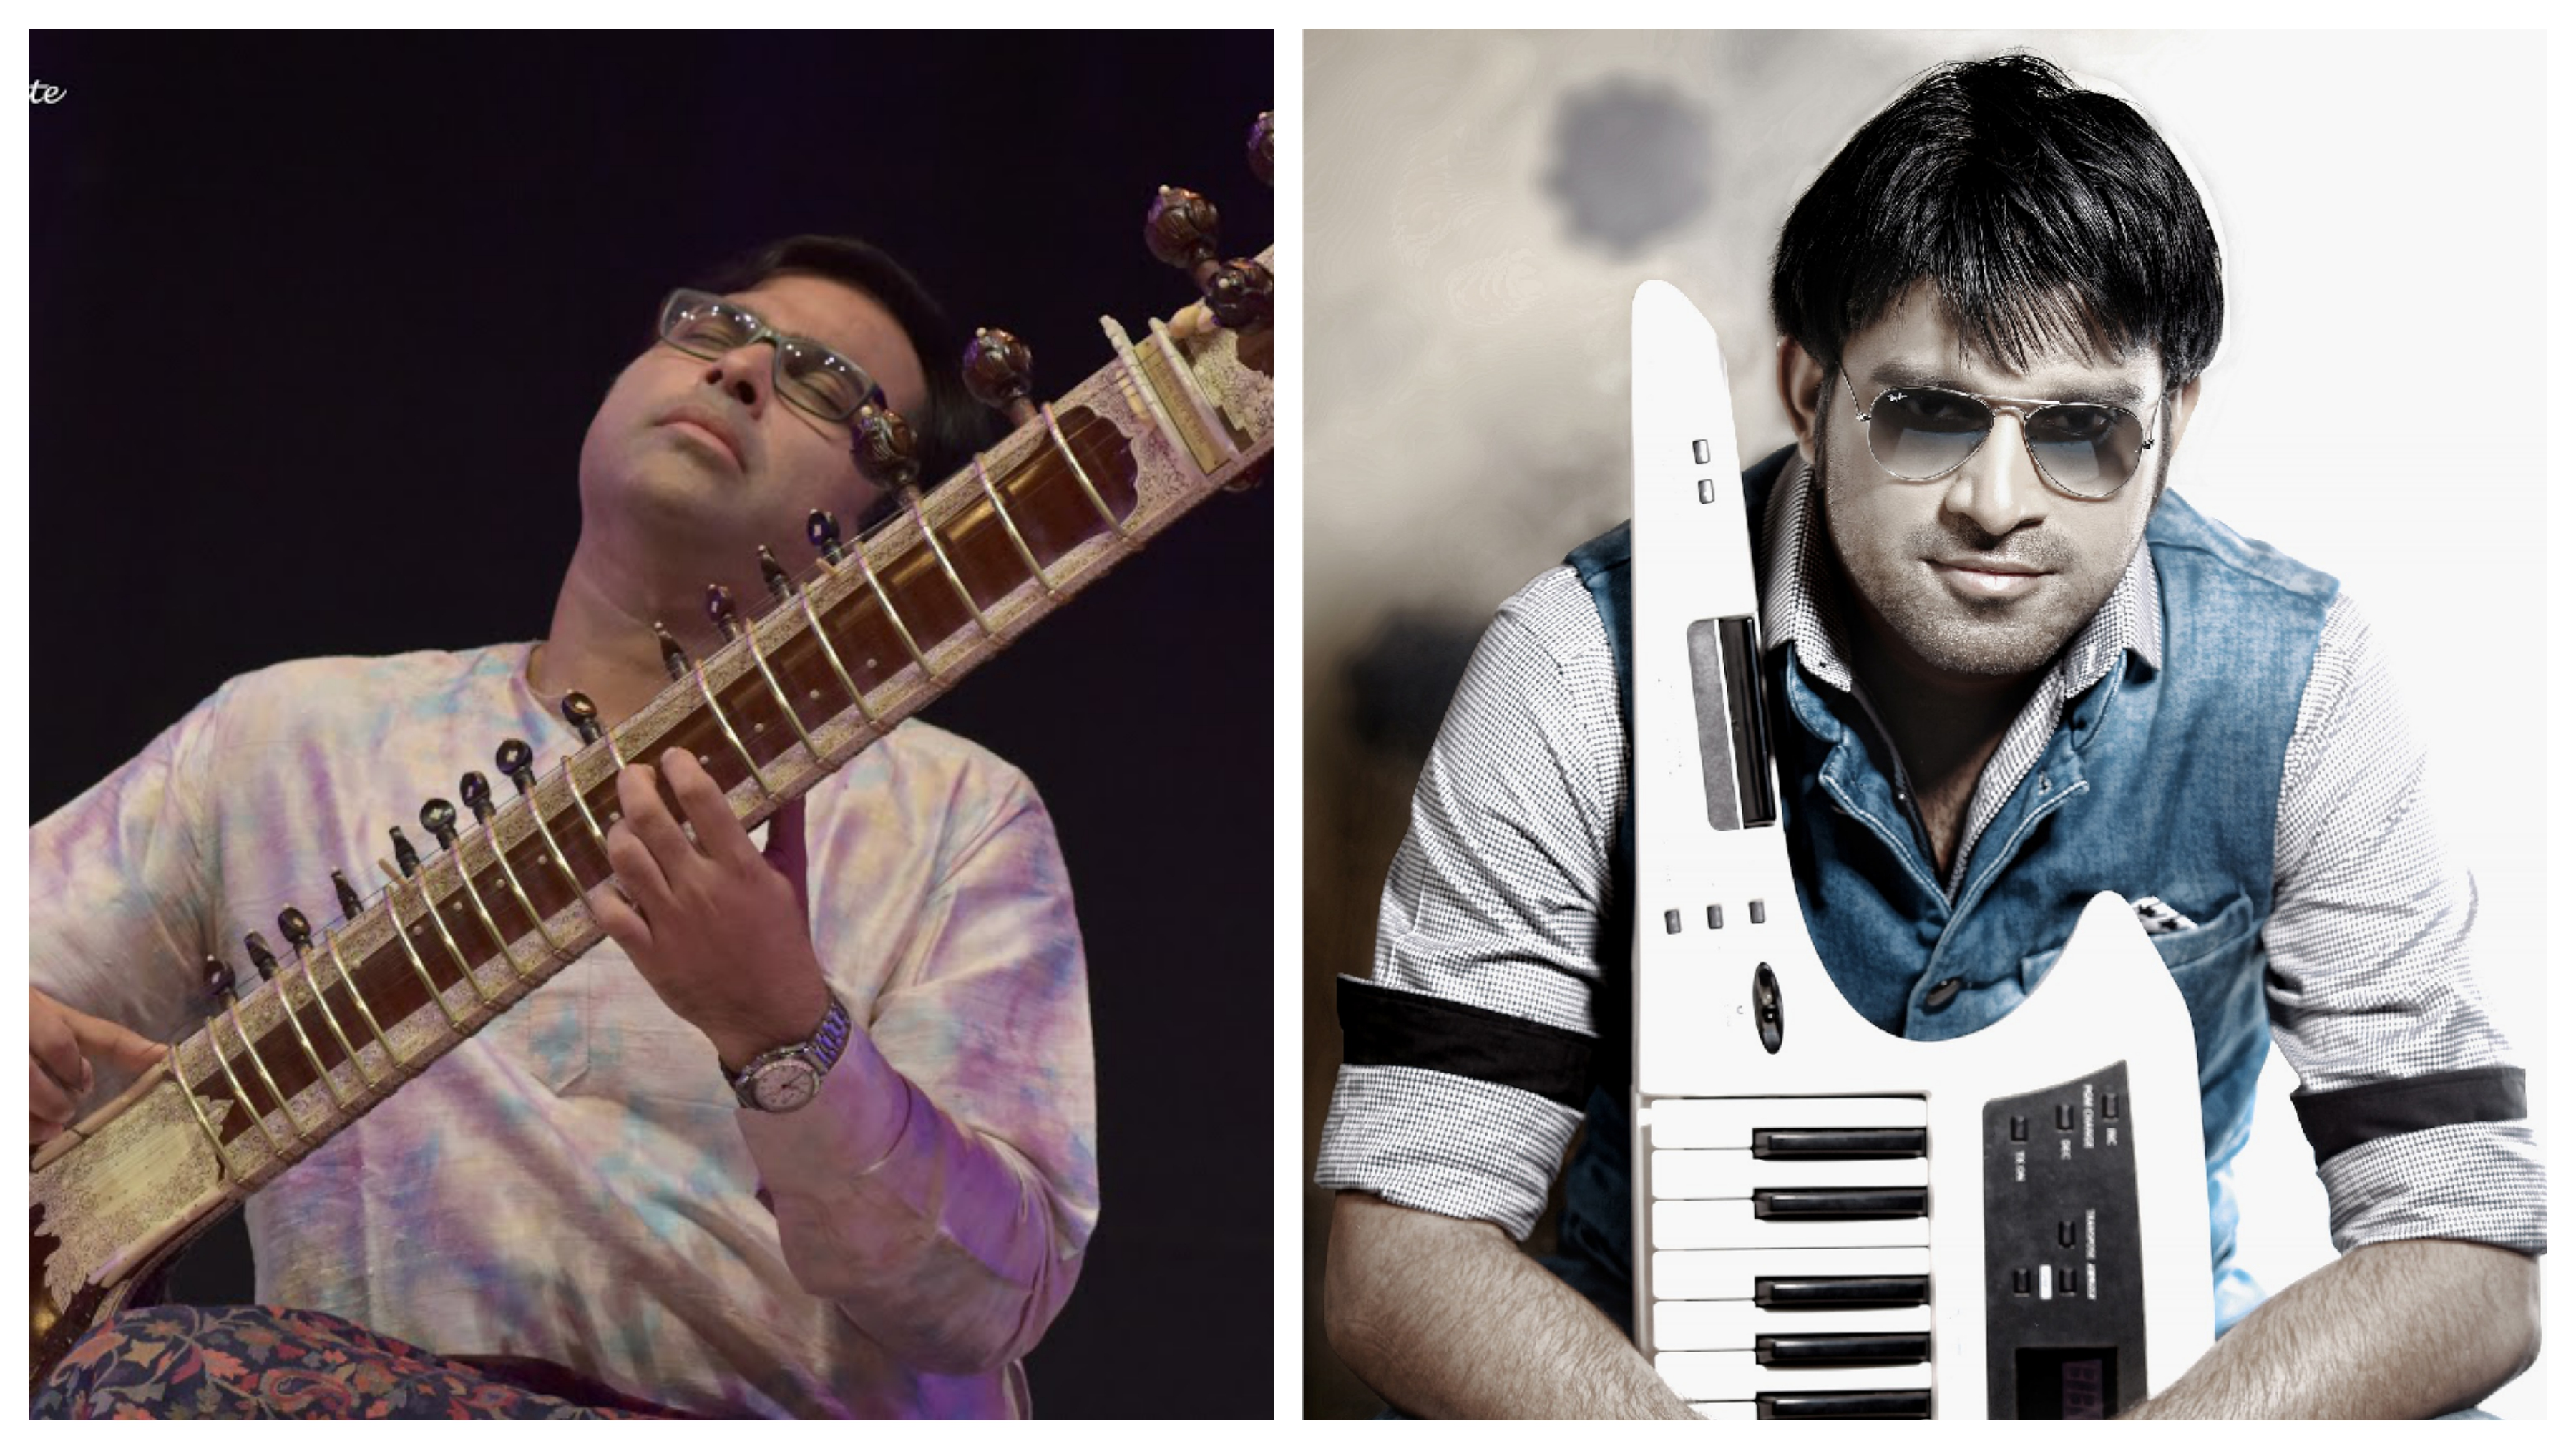 Purbayan Chaterjee's (left) music is noted for his eclectic mix of traditional Indian classical music with contemporary world music genres. Stephen Devassy  is an Indian keyboardist and a music director. He is a power house performer who is fondly called as the 'Flying Fingers'. Photo courtesy: Arte Compass